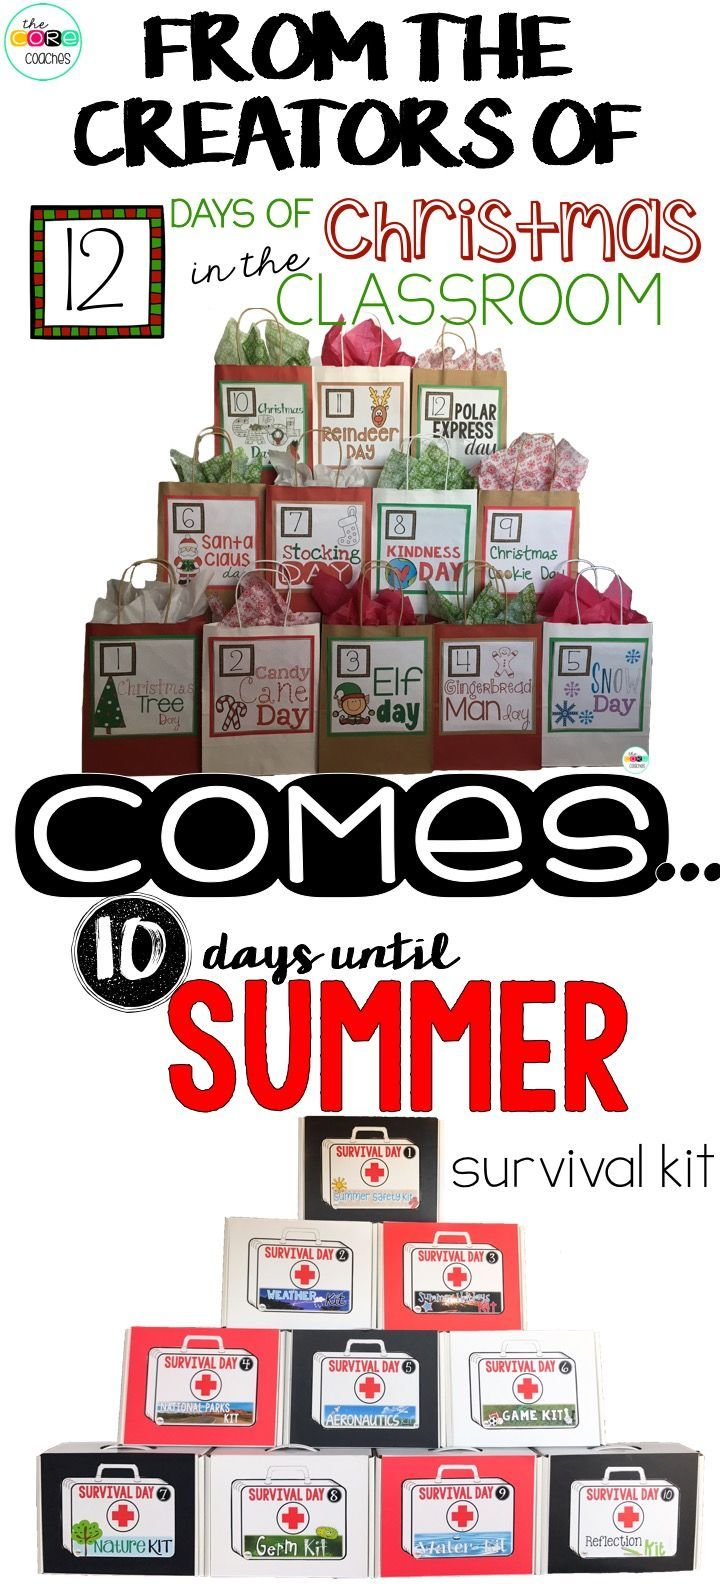 Perfect end of year lesson plans that help kids countdown to summer. Review grade level skills all while having a blast during the last 10 days of school! Kit includes Reading, Writing, Math, Science or STEM, and Art for every daily theme.